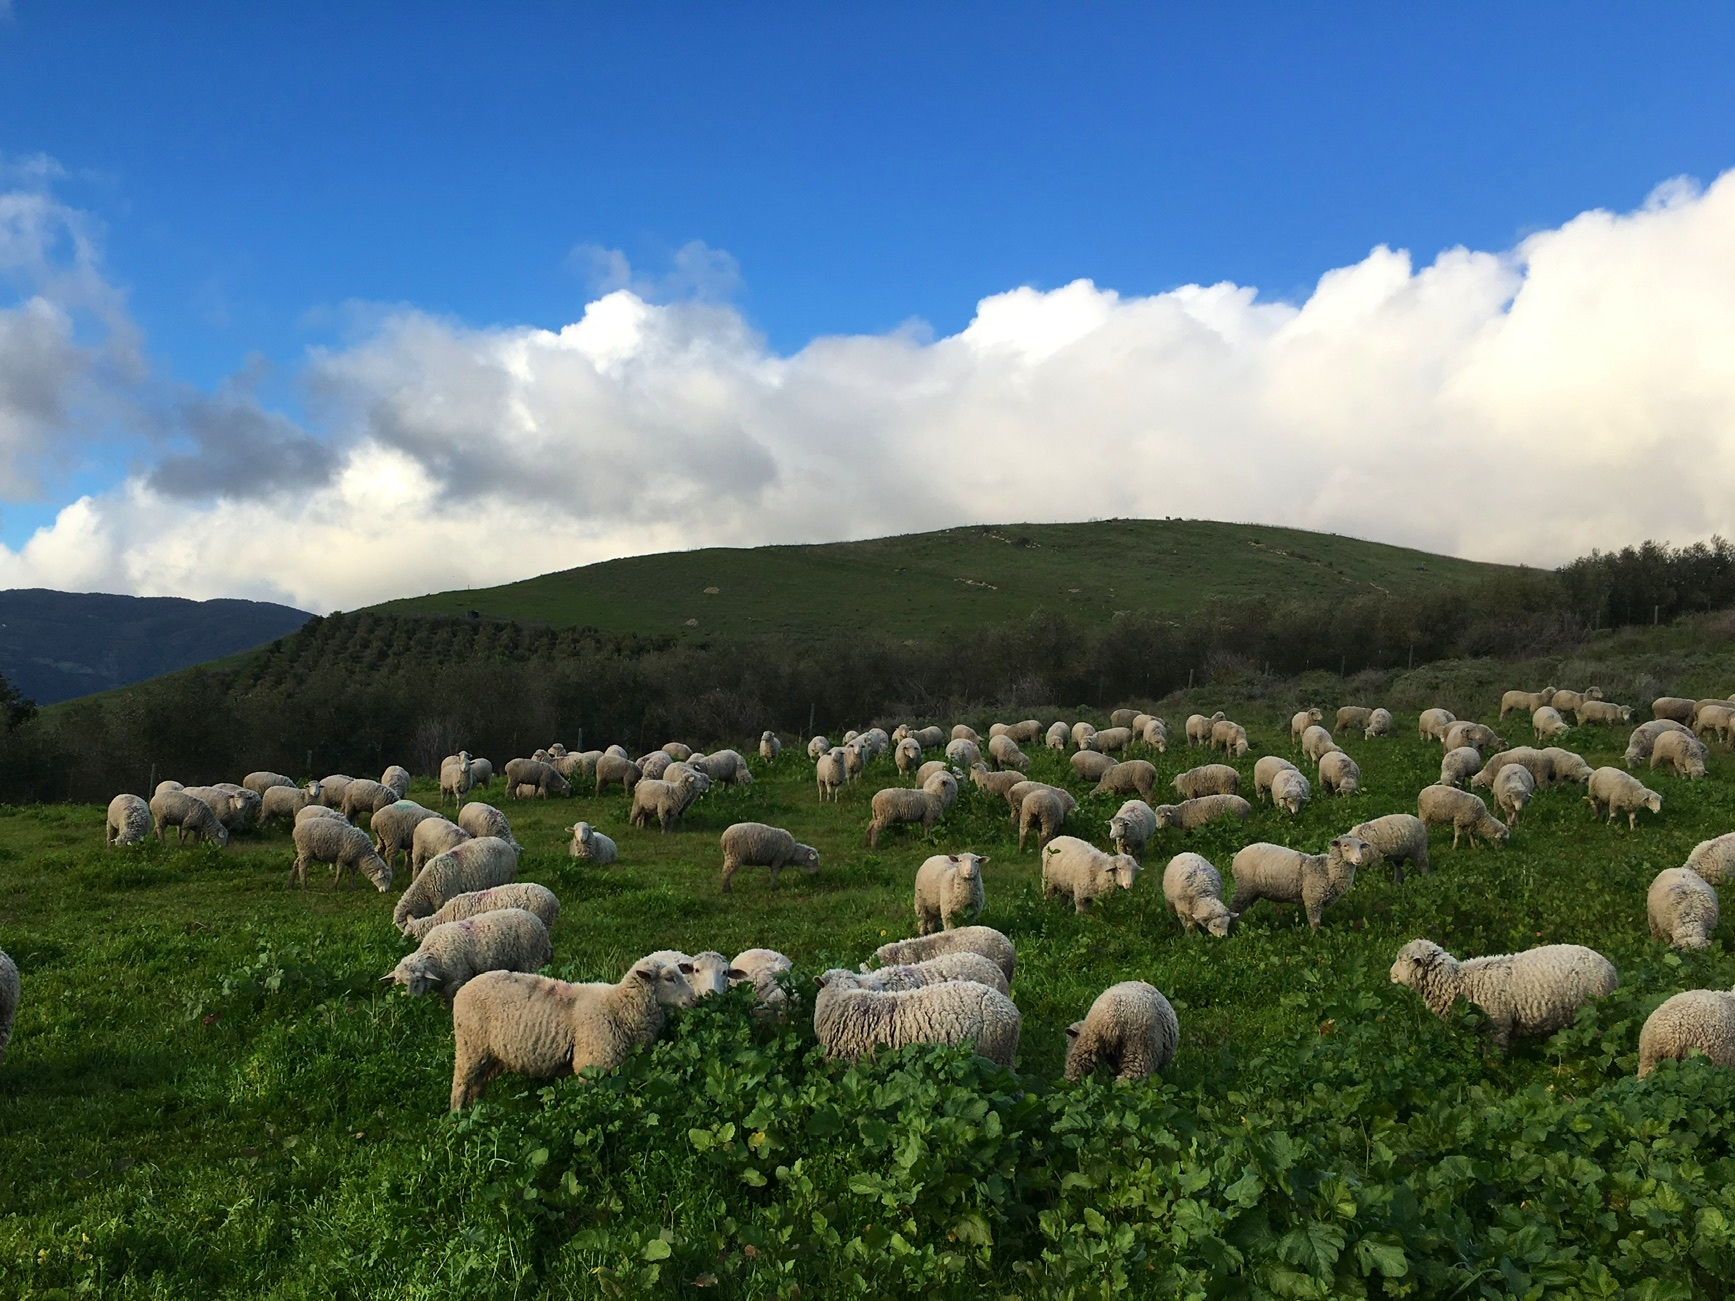 Our sheep graze at Orella Ranch in Goleta, CA. At this density, they graze plants uniformly including thoroughly eating down the broadleaf mallow and mustard that has taken over this pasture. March, 2019.